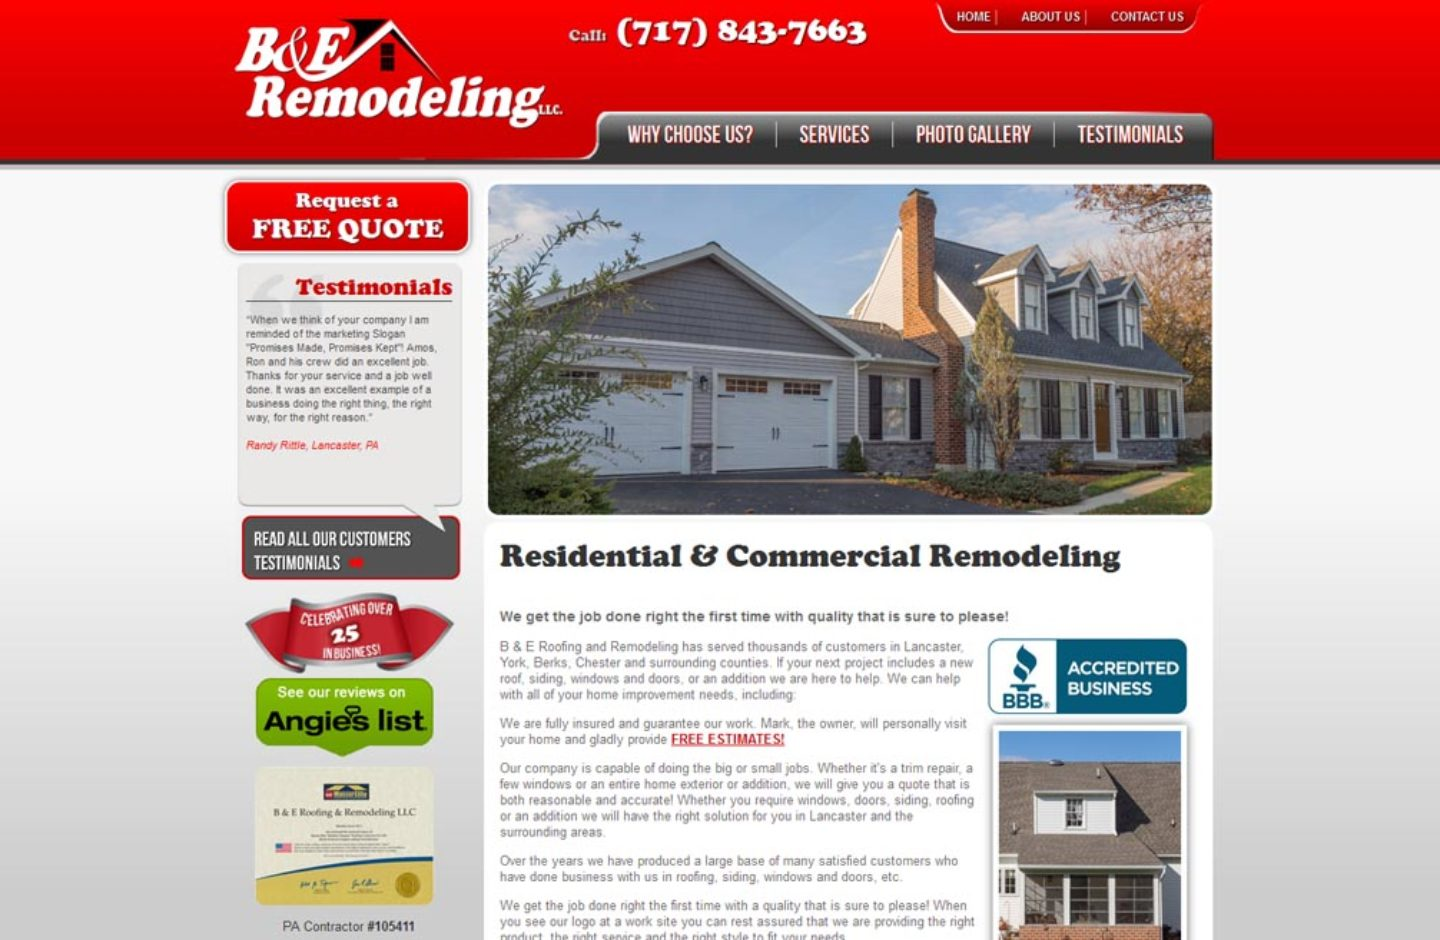 BE Remodeling